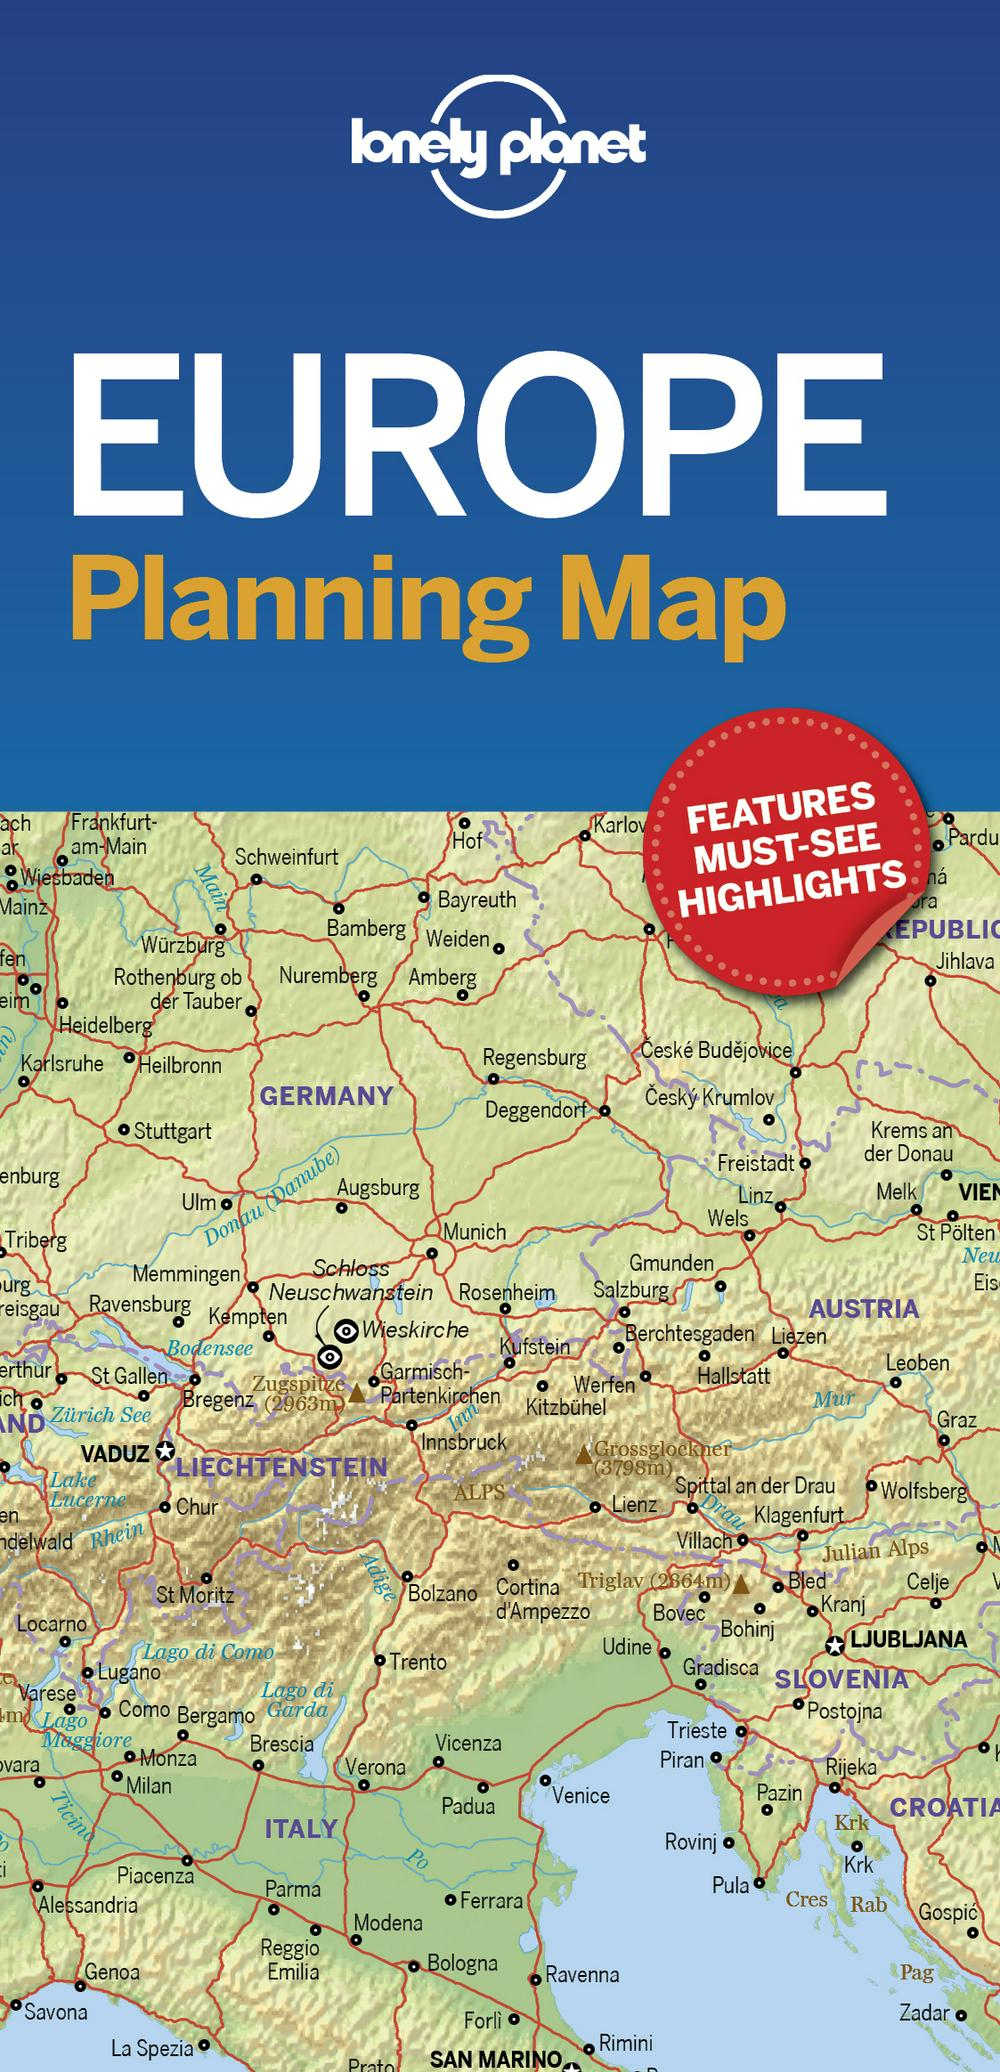 Lonely Planet Europe Planning Map